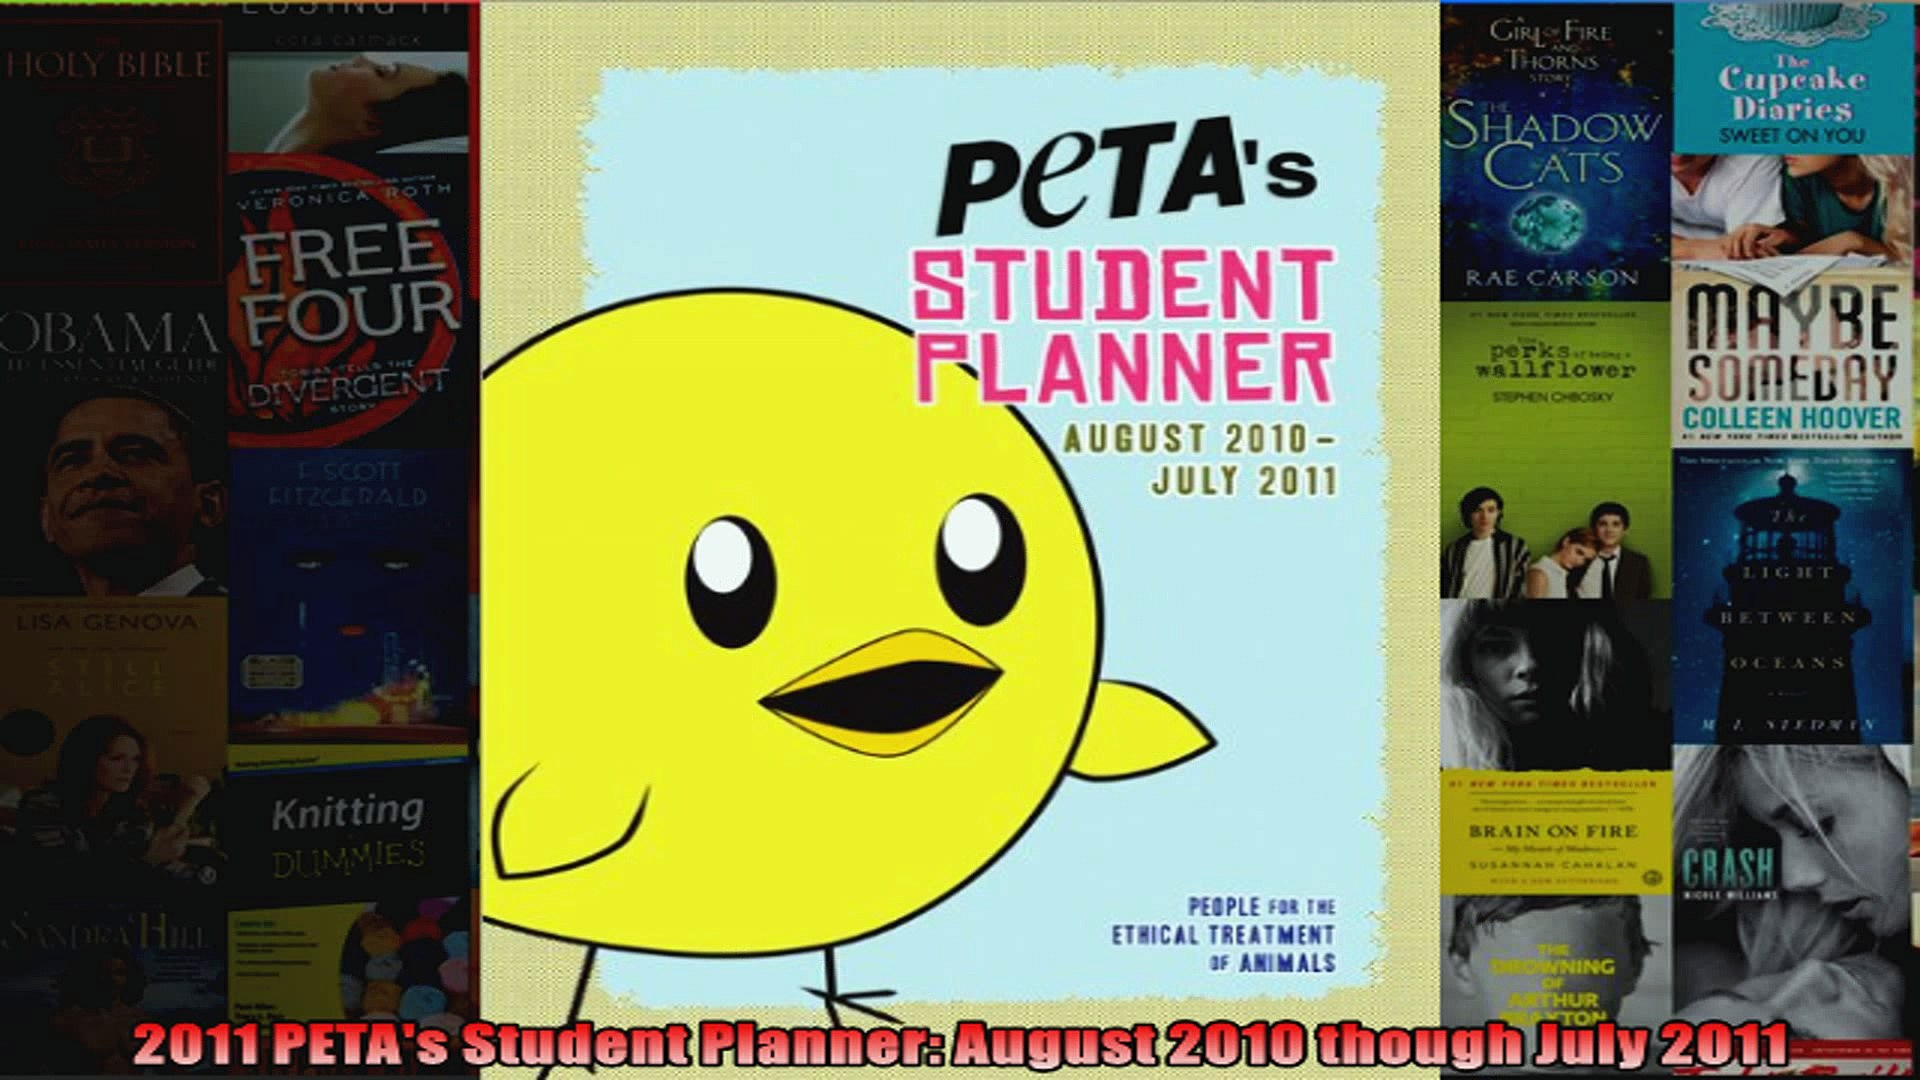 2011 PETAs Student Planner August 2010 though July 2011